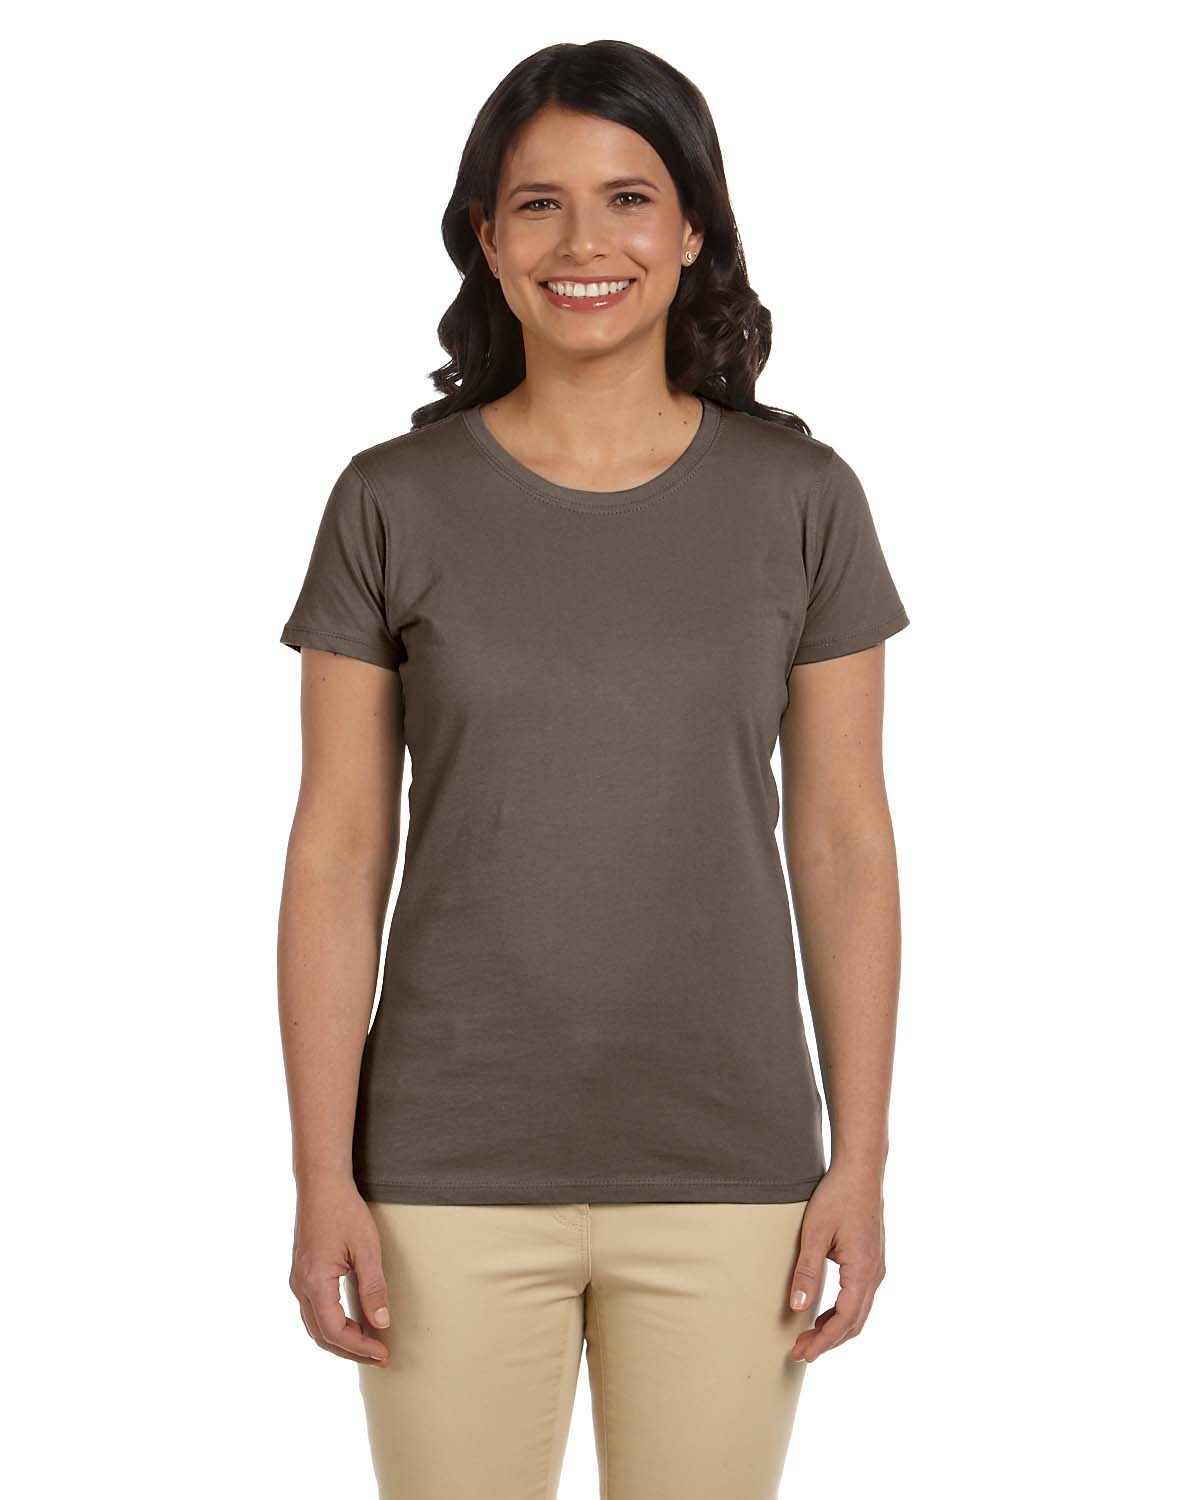 Certified organic cotton women 39 s classic short sleeve t for Short t shirts ladies